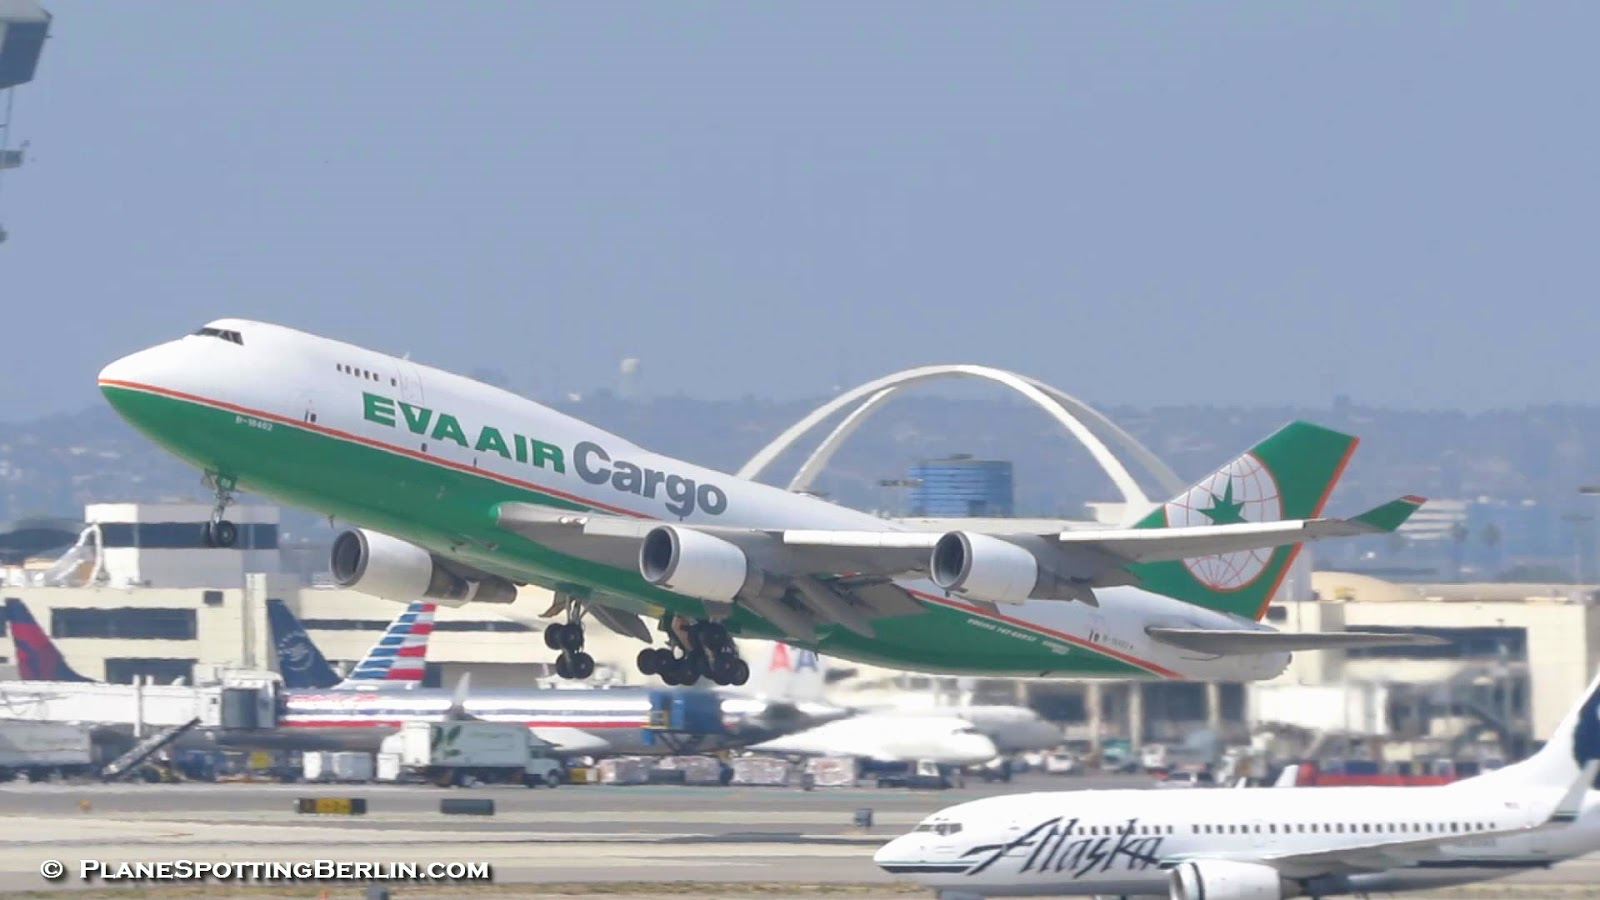 Eva Air Cargo Boeing 747 400f B 16402 Takeoff From Los Angeles Intl Airport Lax